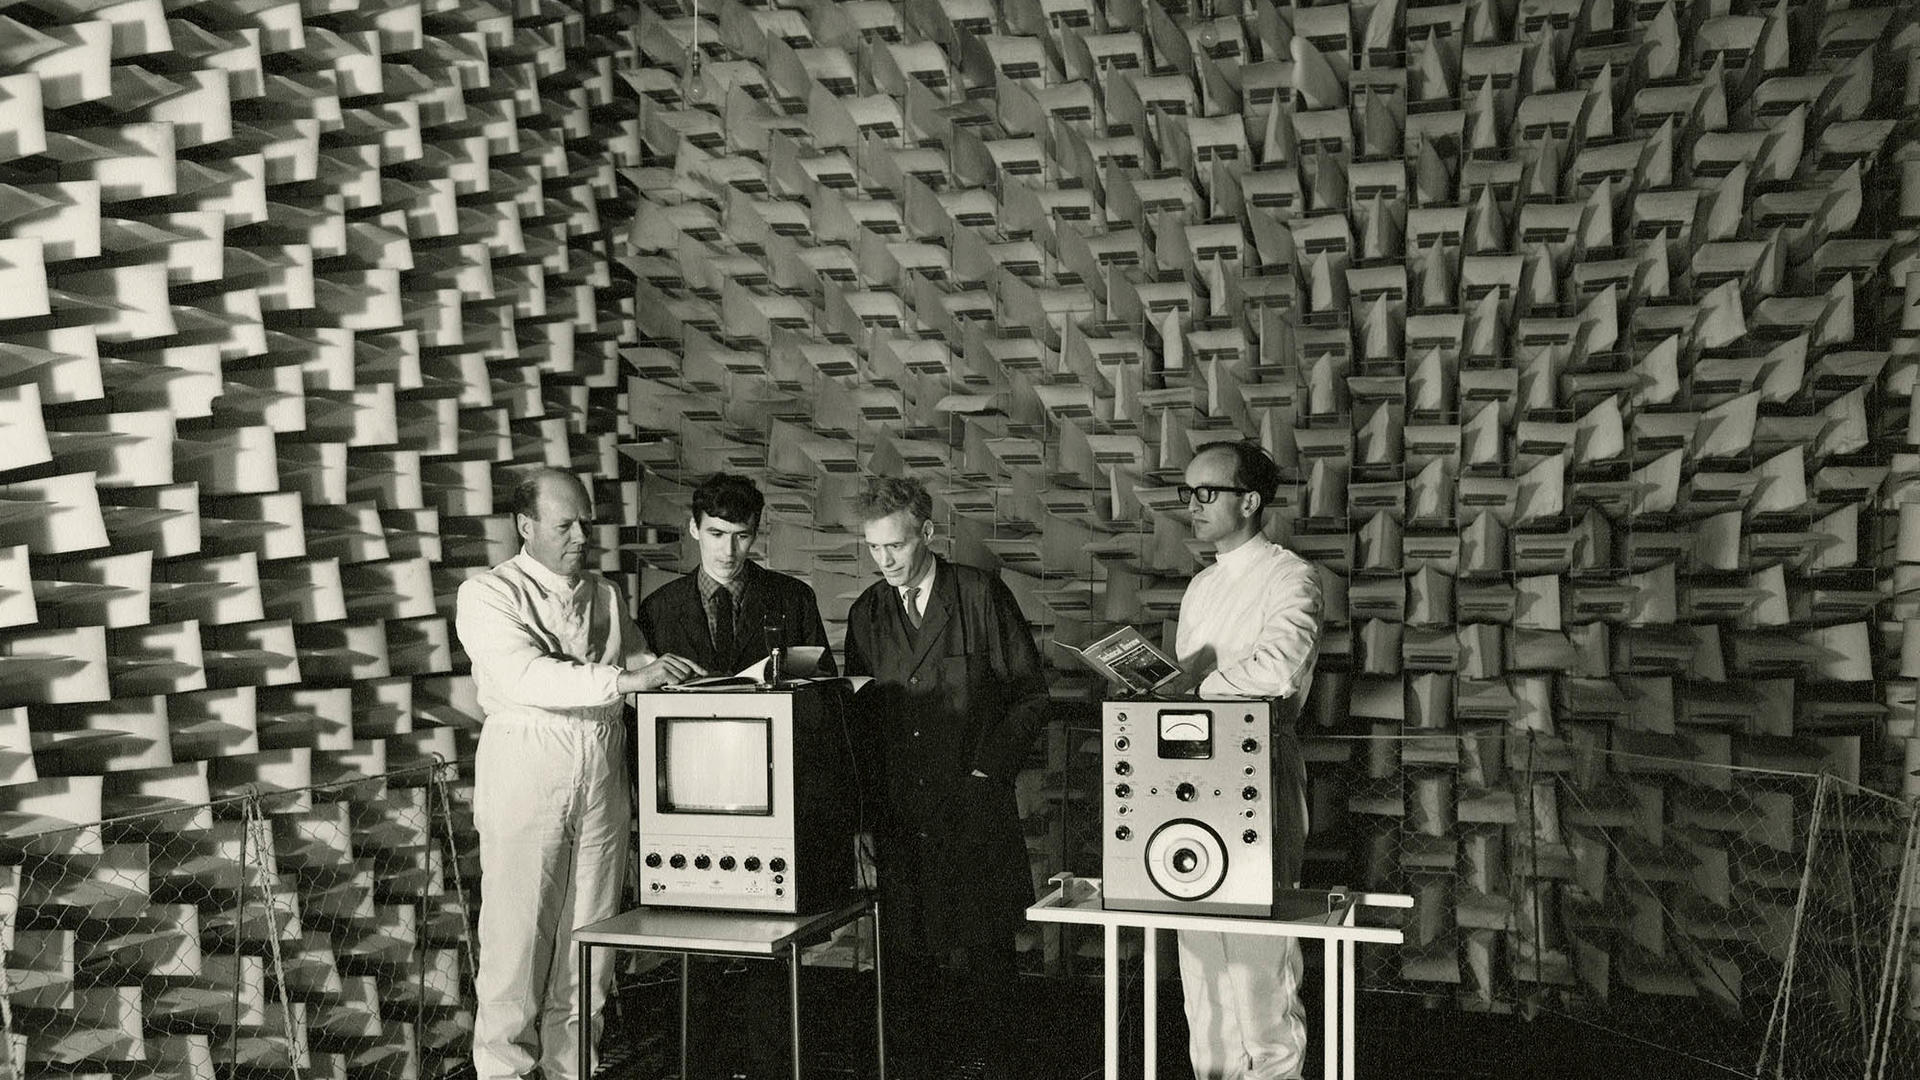 The flat TV group in the anechoic chamber, 1970s, University of Dundee archives